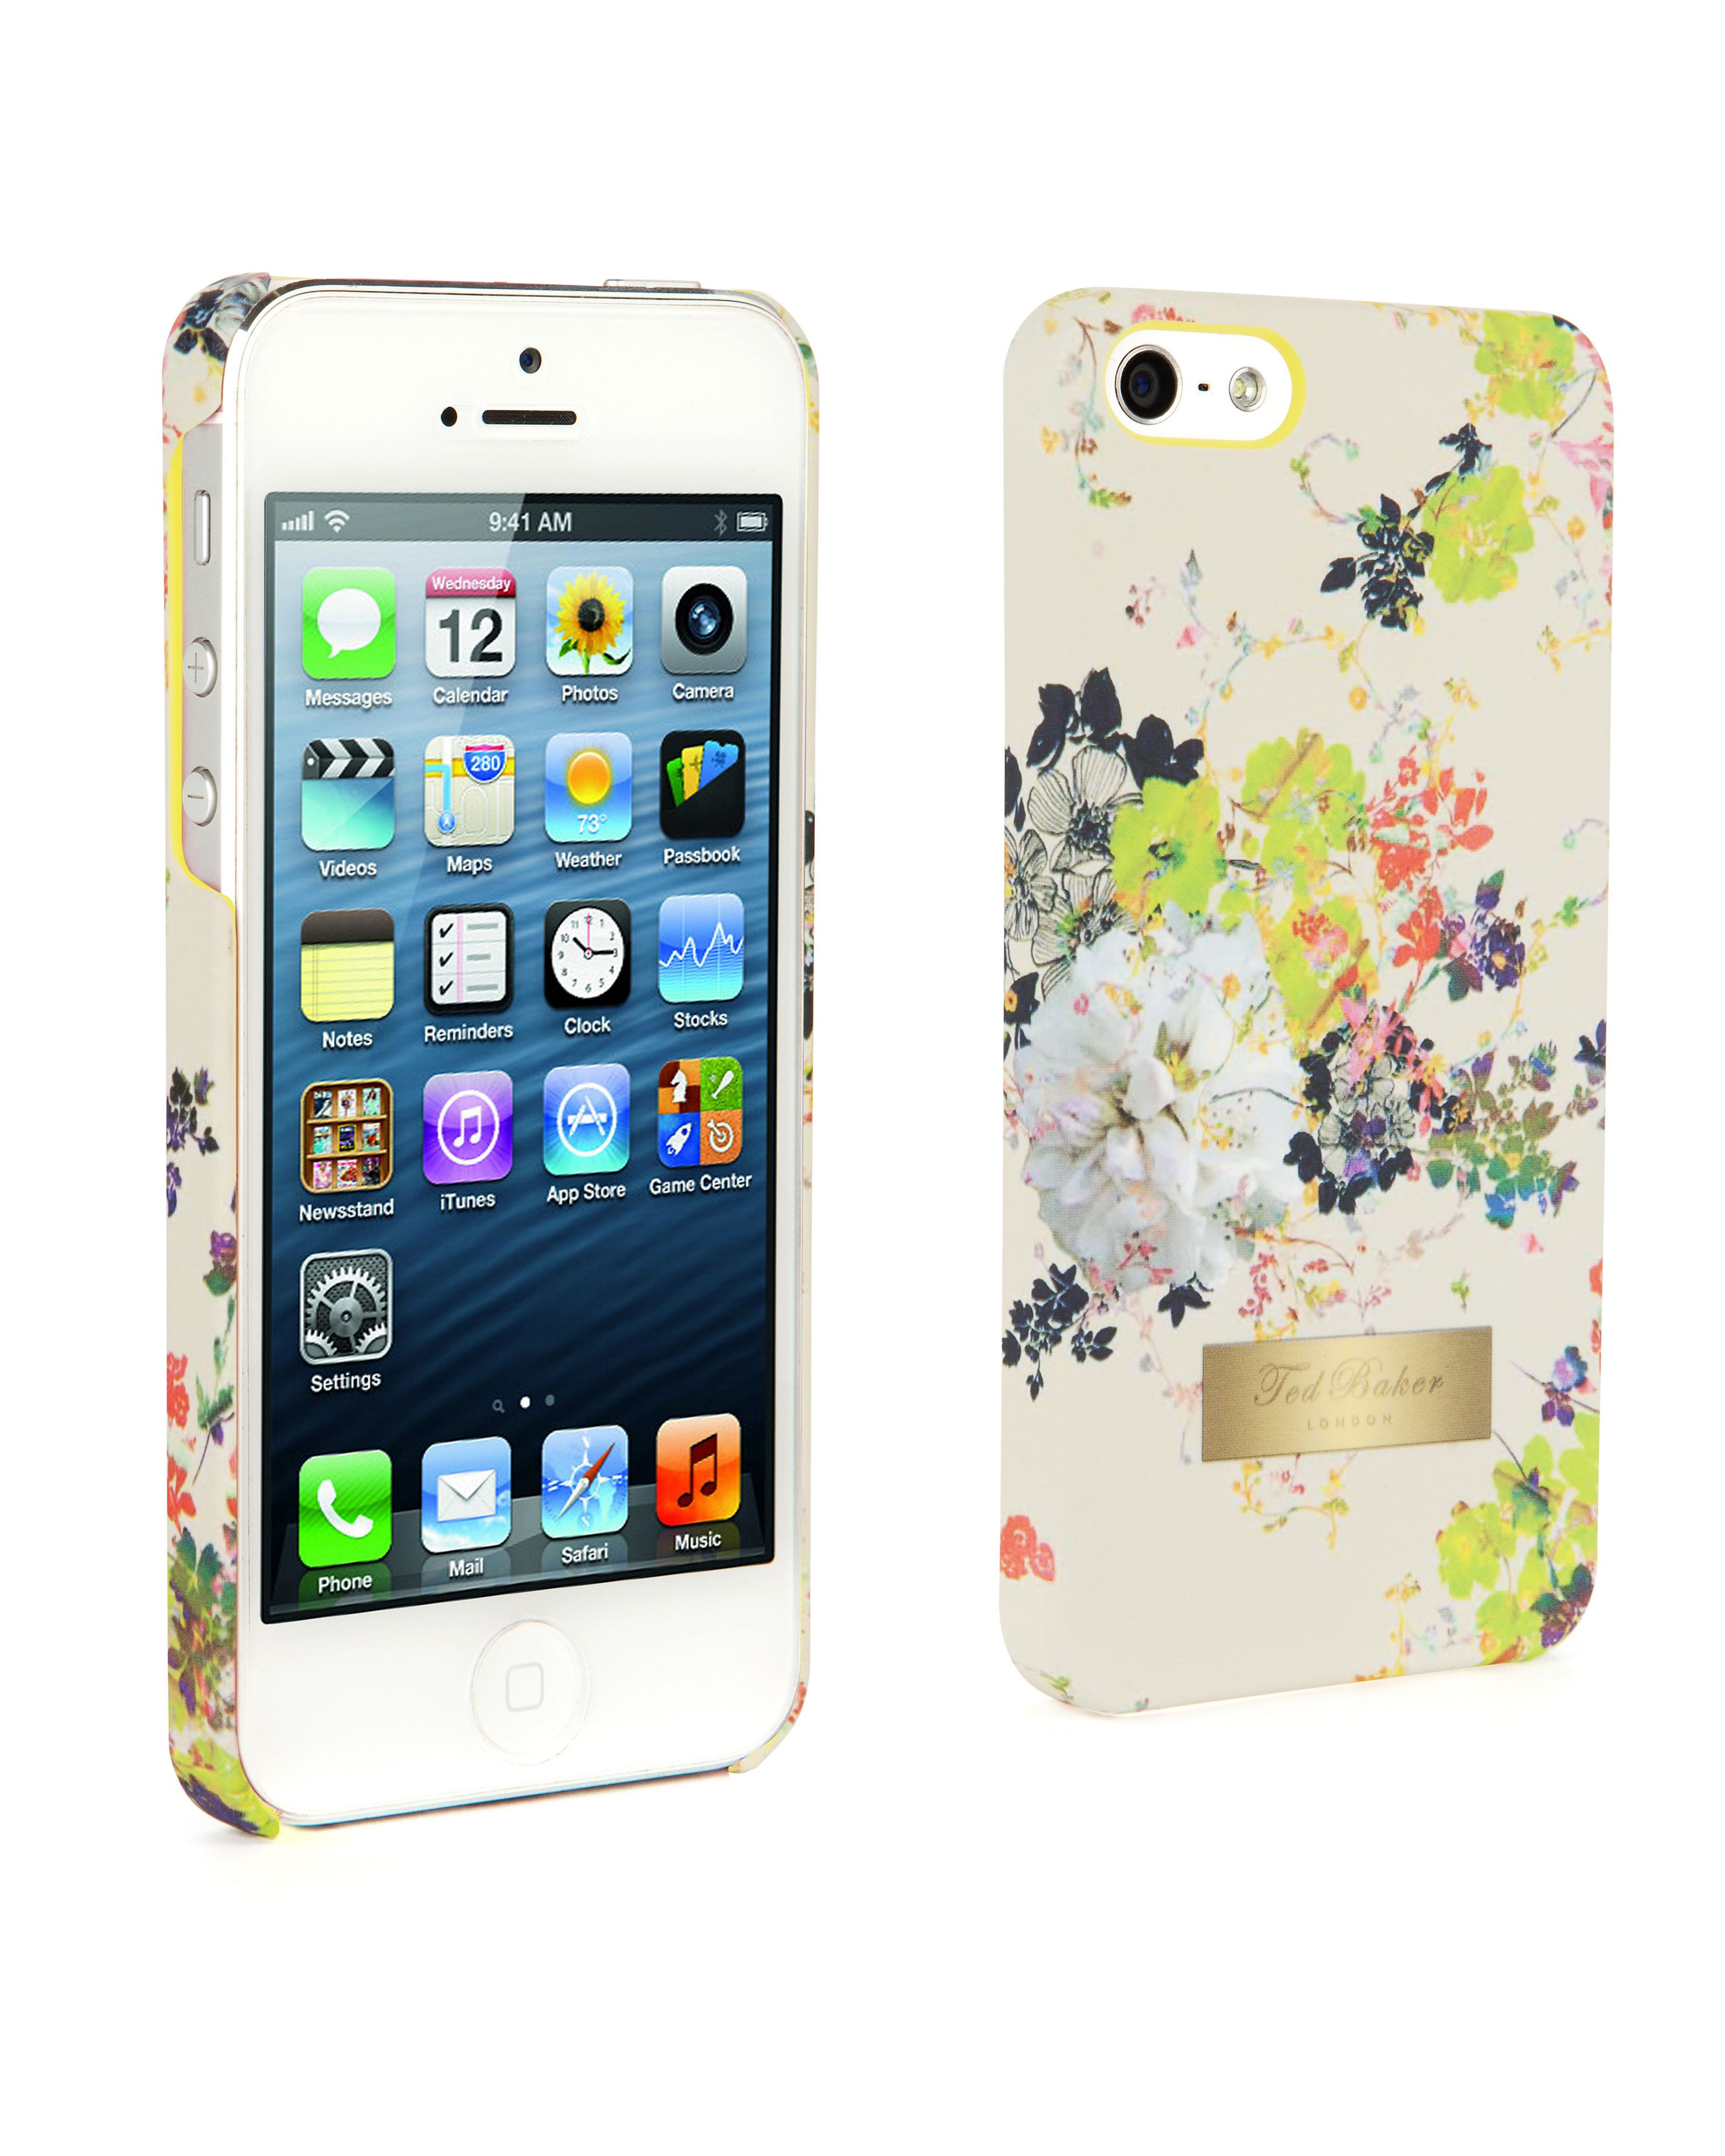 Hemera summer bloom iphone hardcase